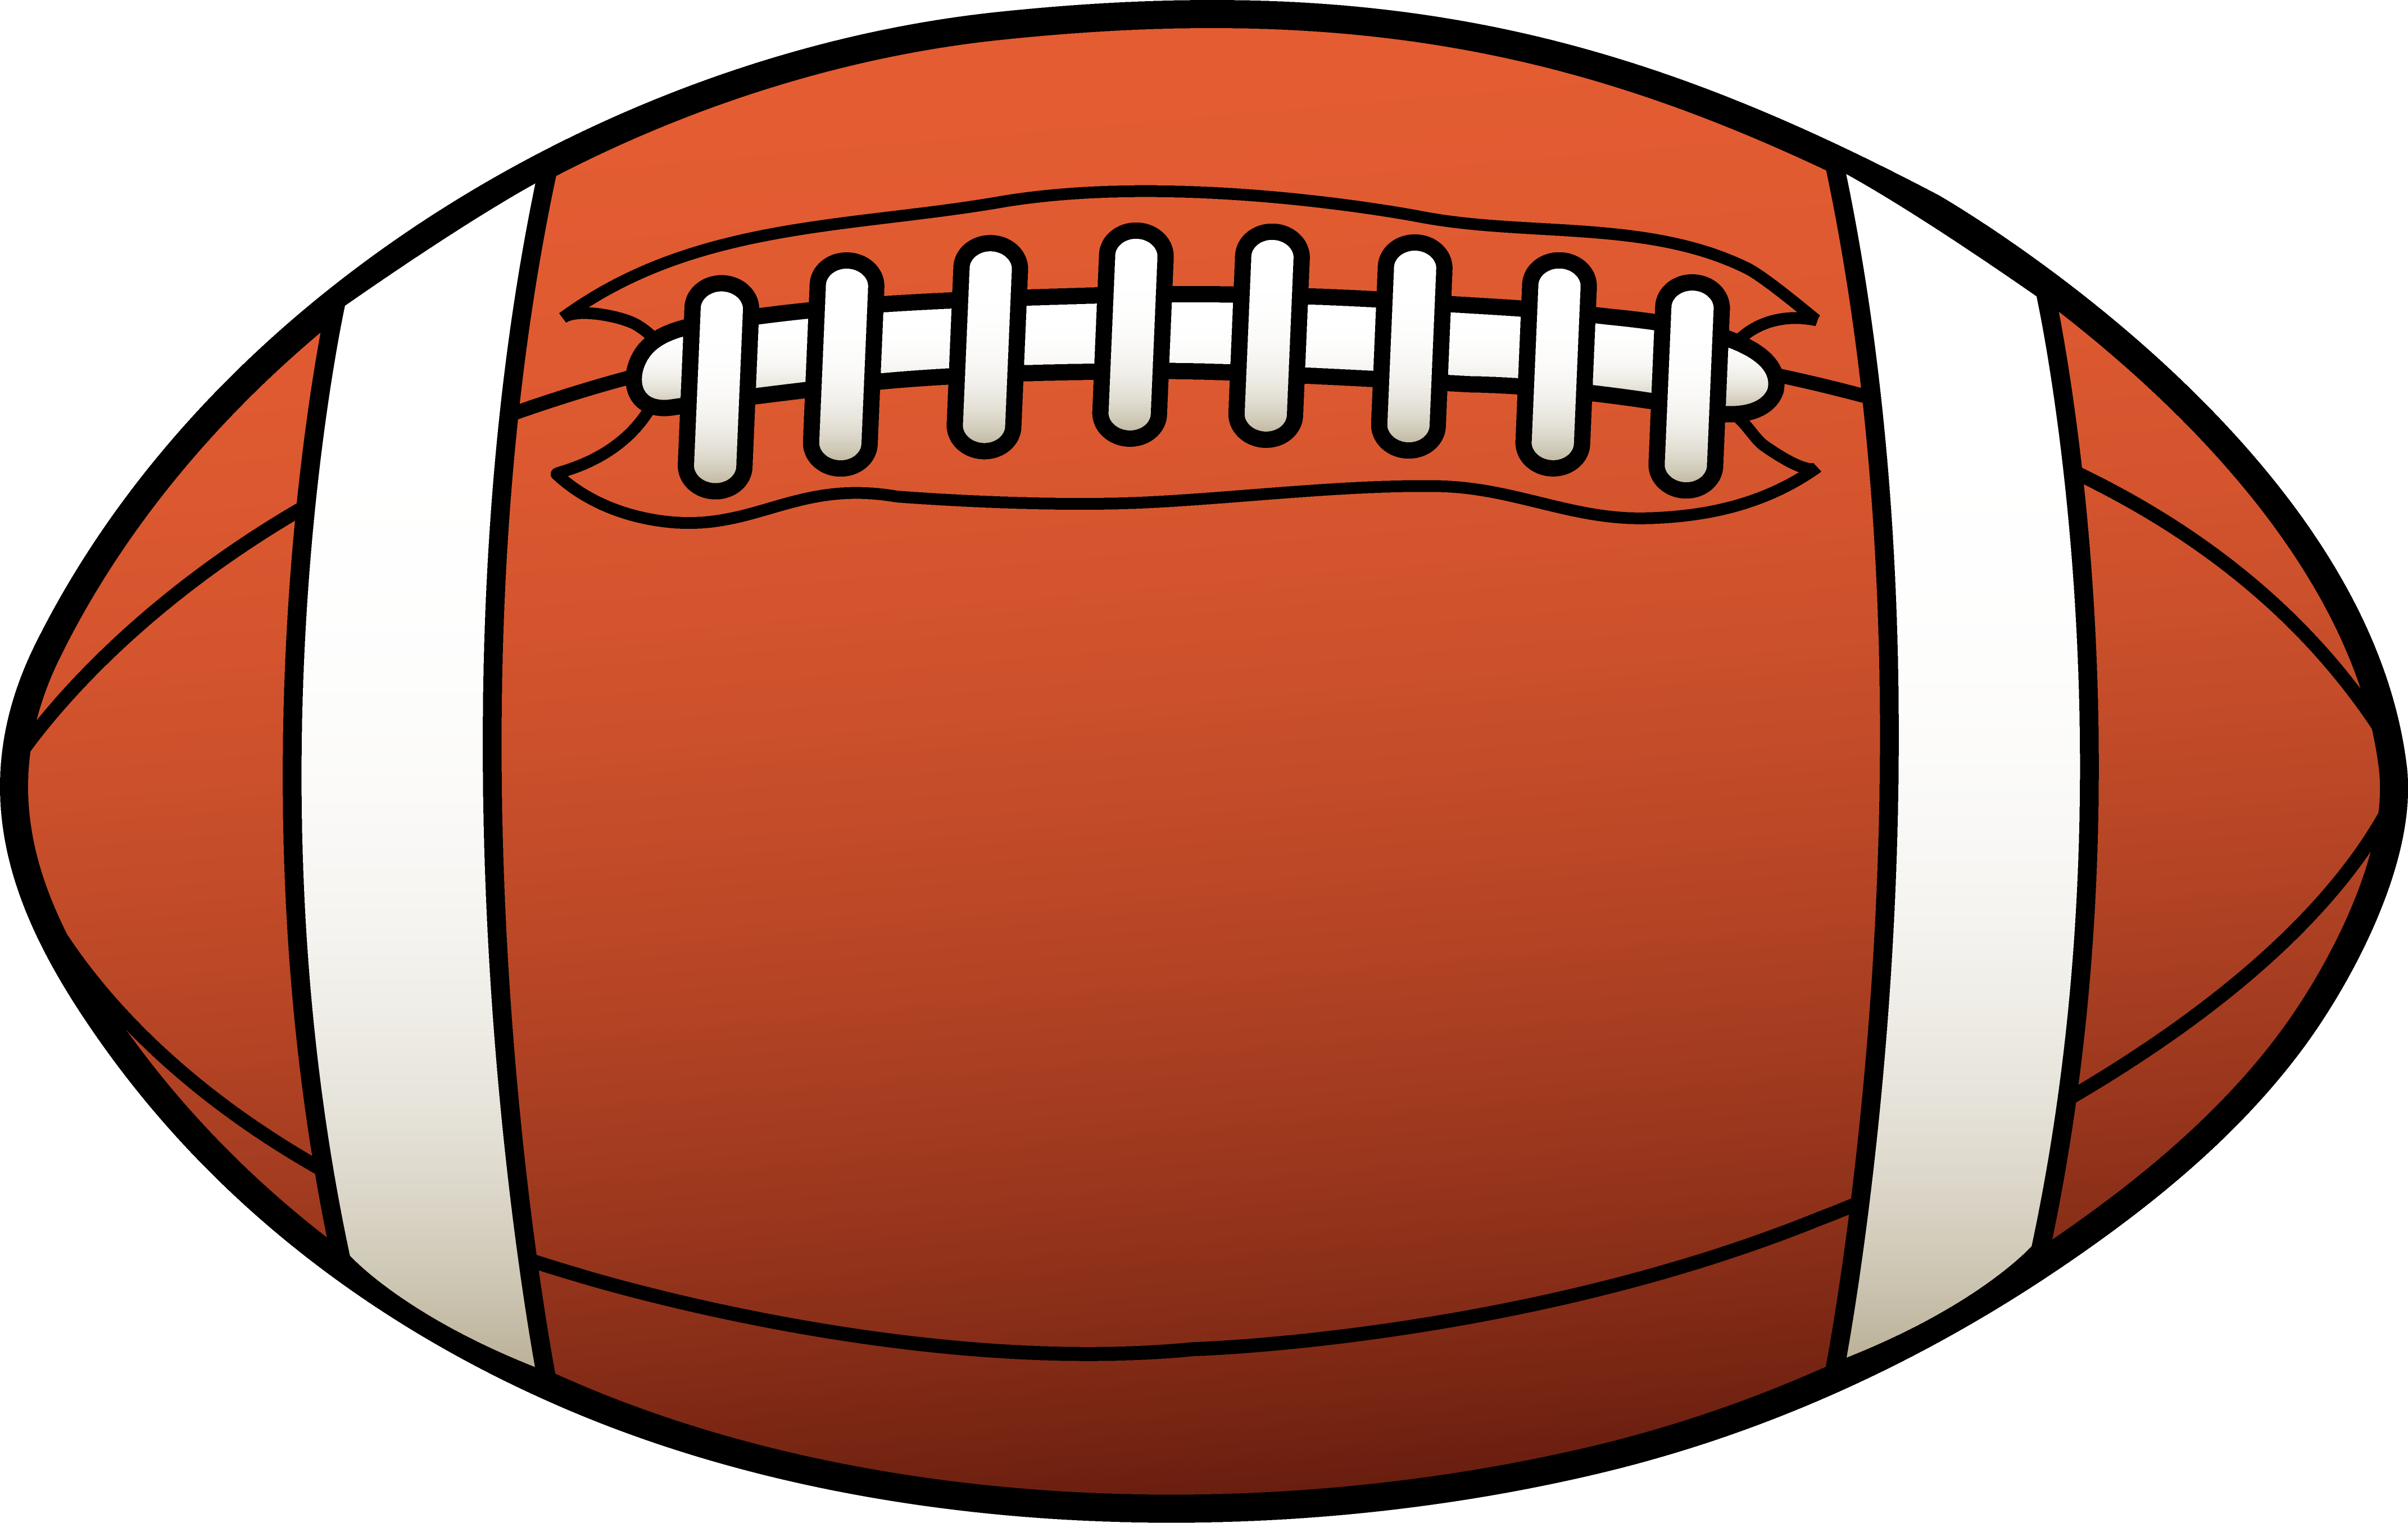 clipart football - free